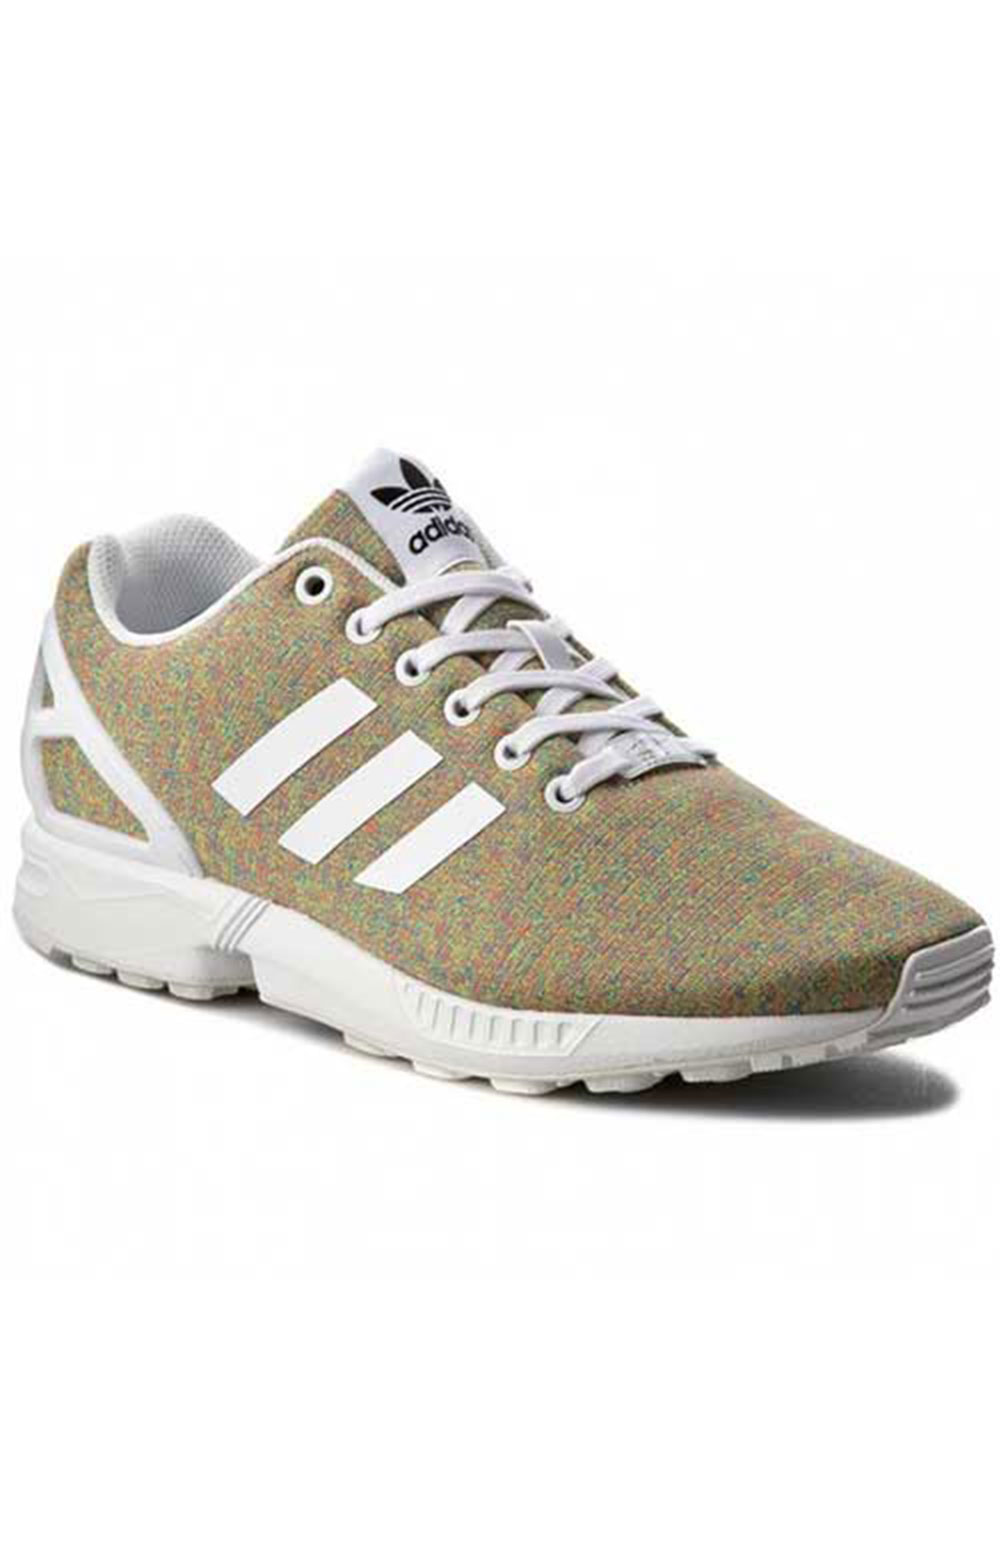 (BB2772) ZX Flux Shoe - Ftwr White/Ftwr White